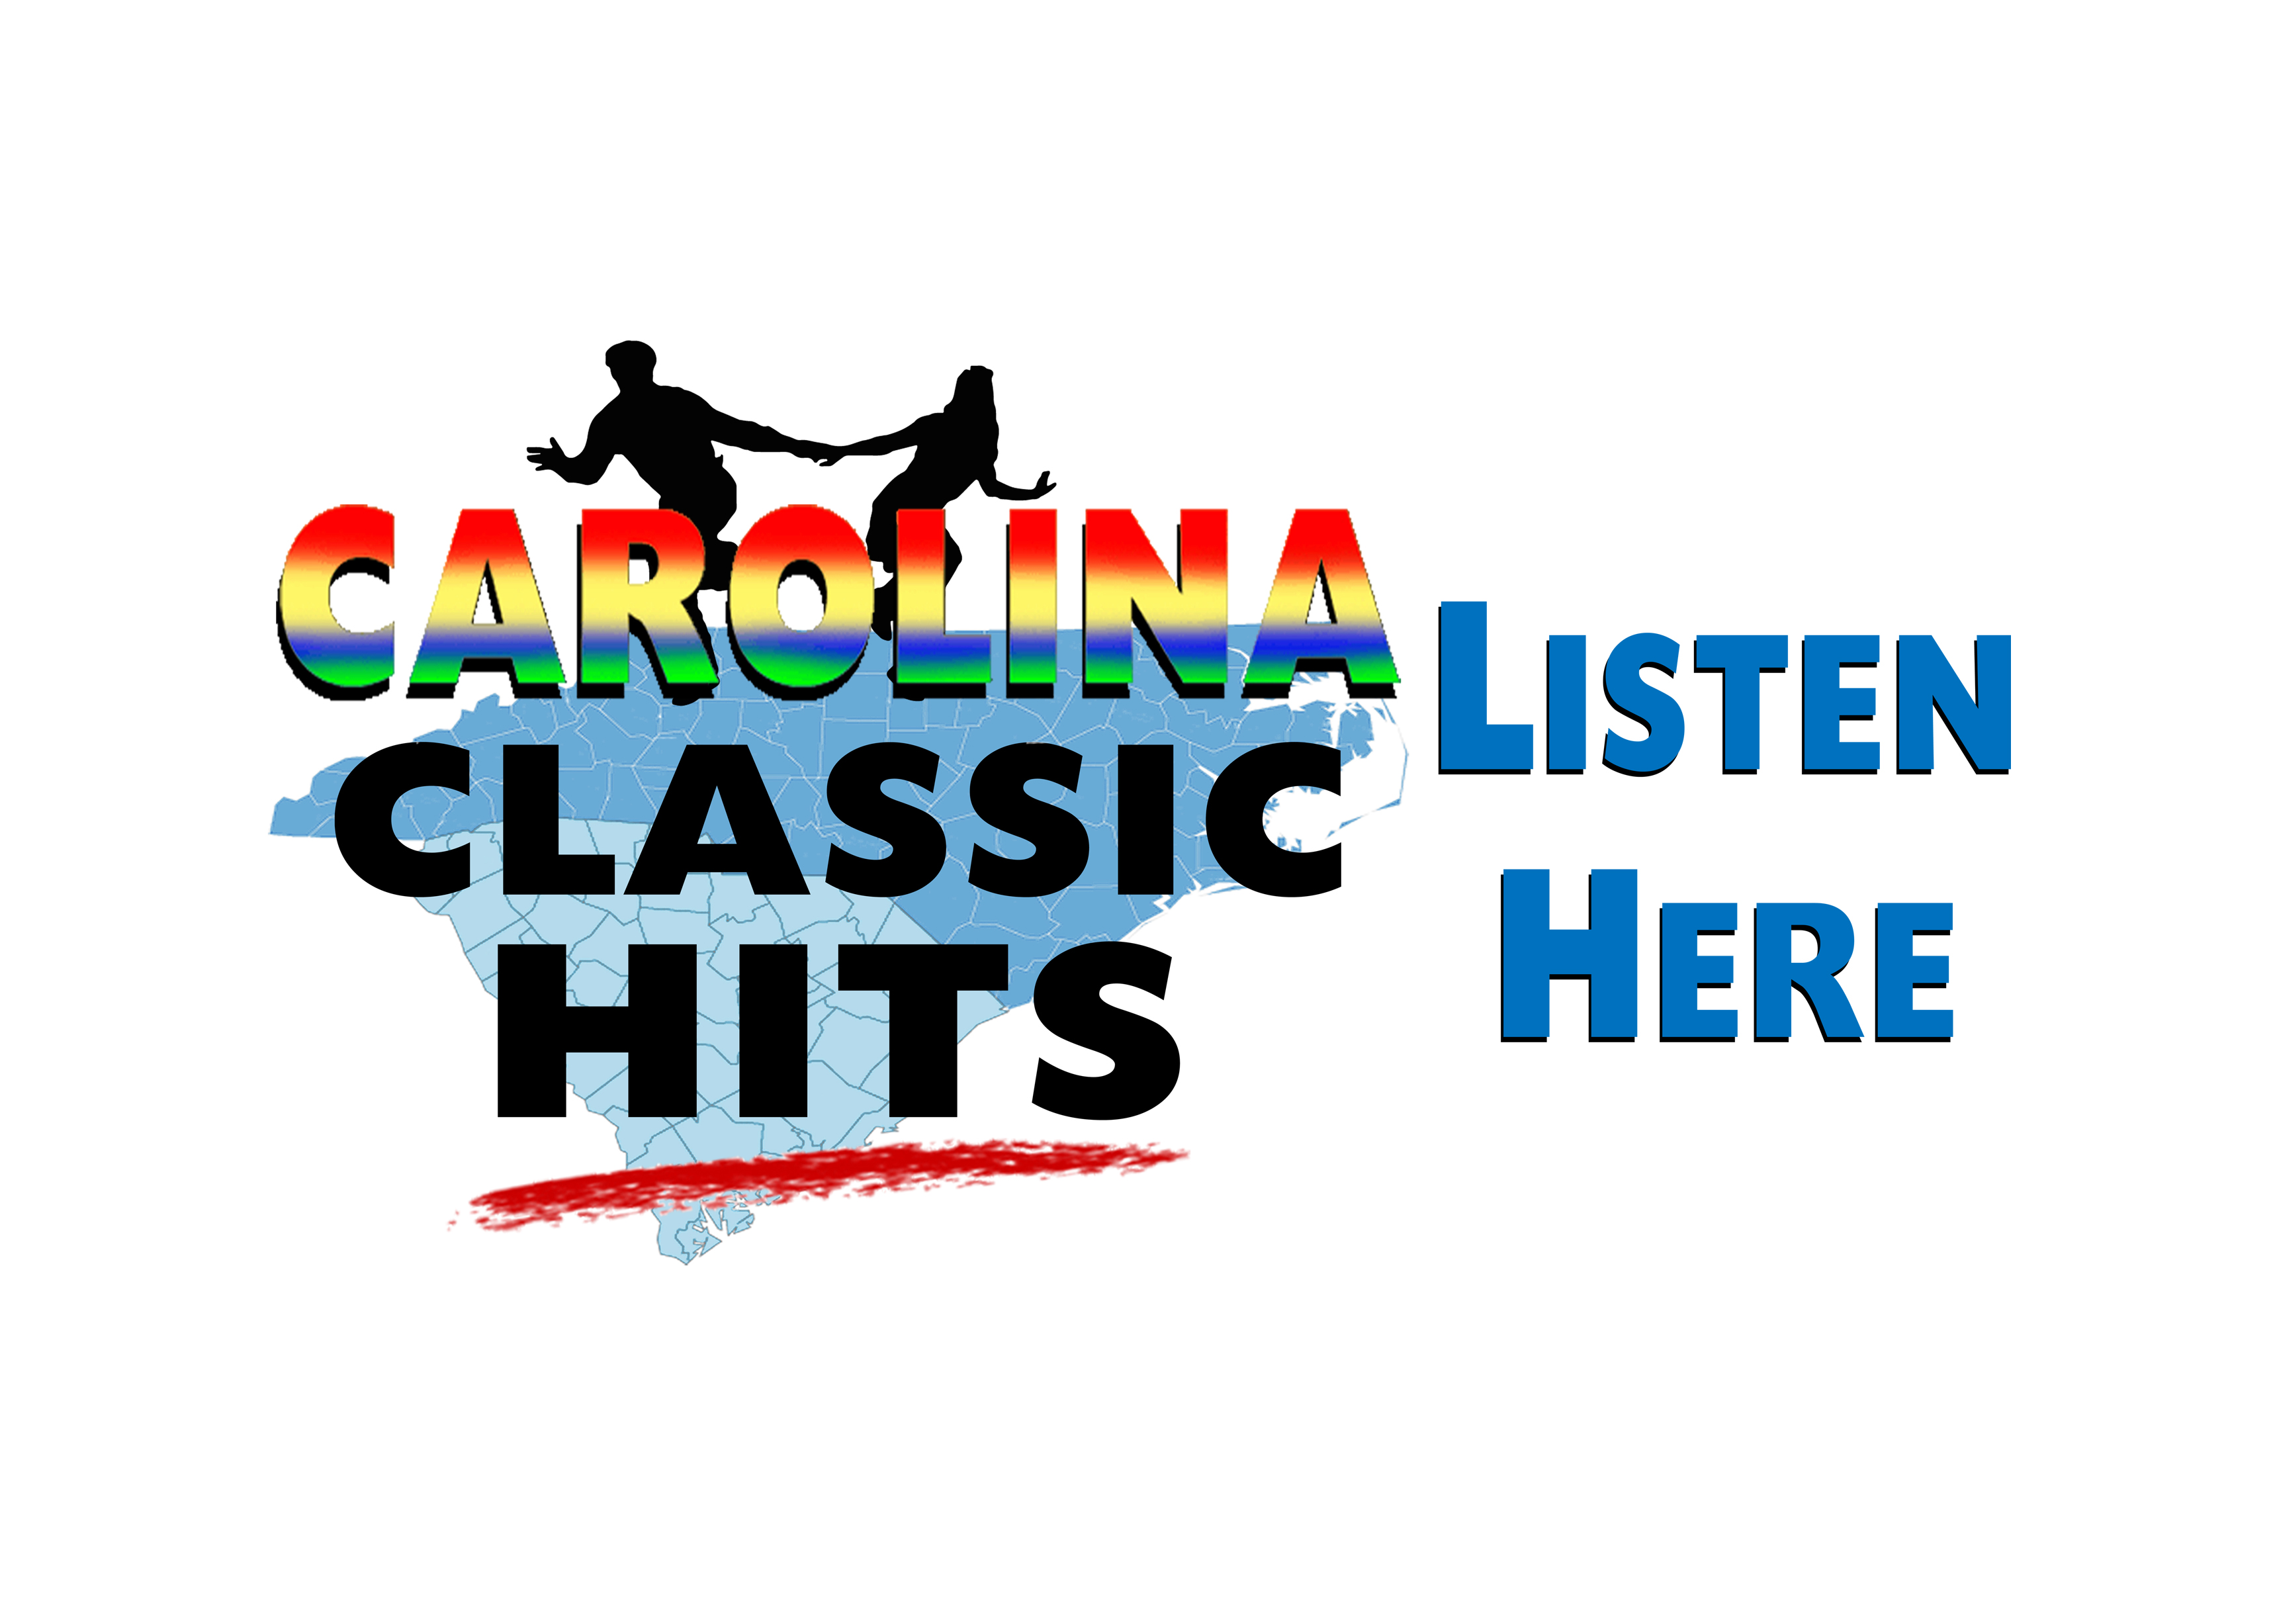 Cch carolina classic hits radio station for Classic house hits